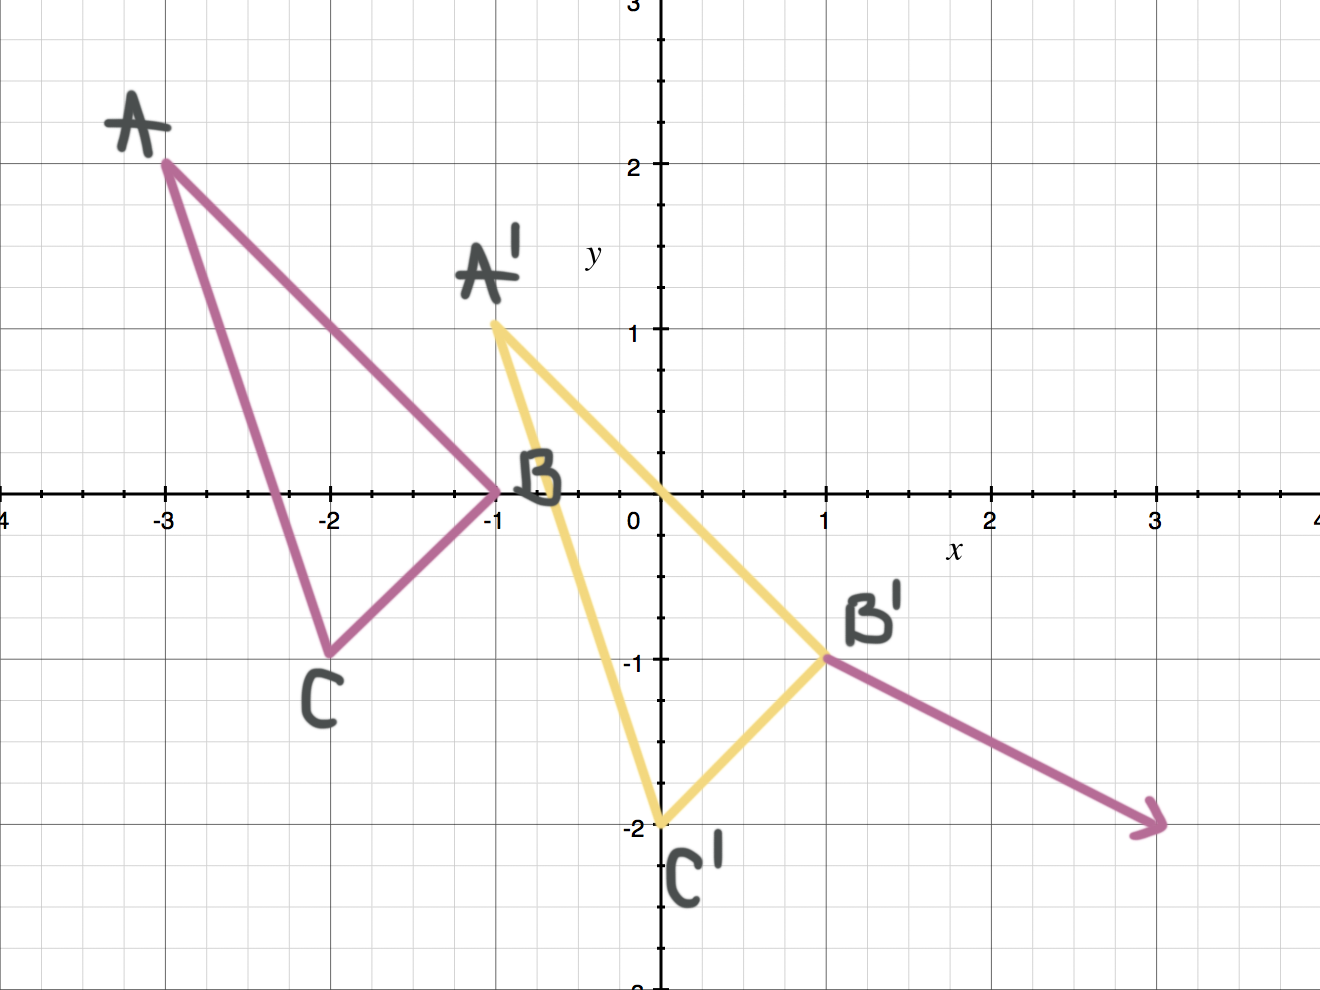 The triangle's image after the translation